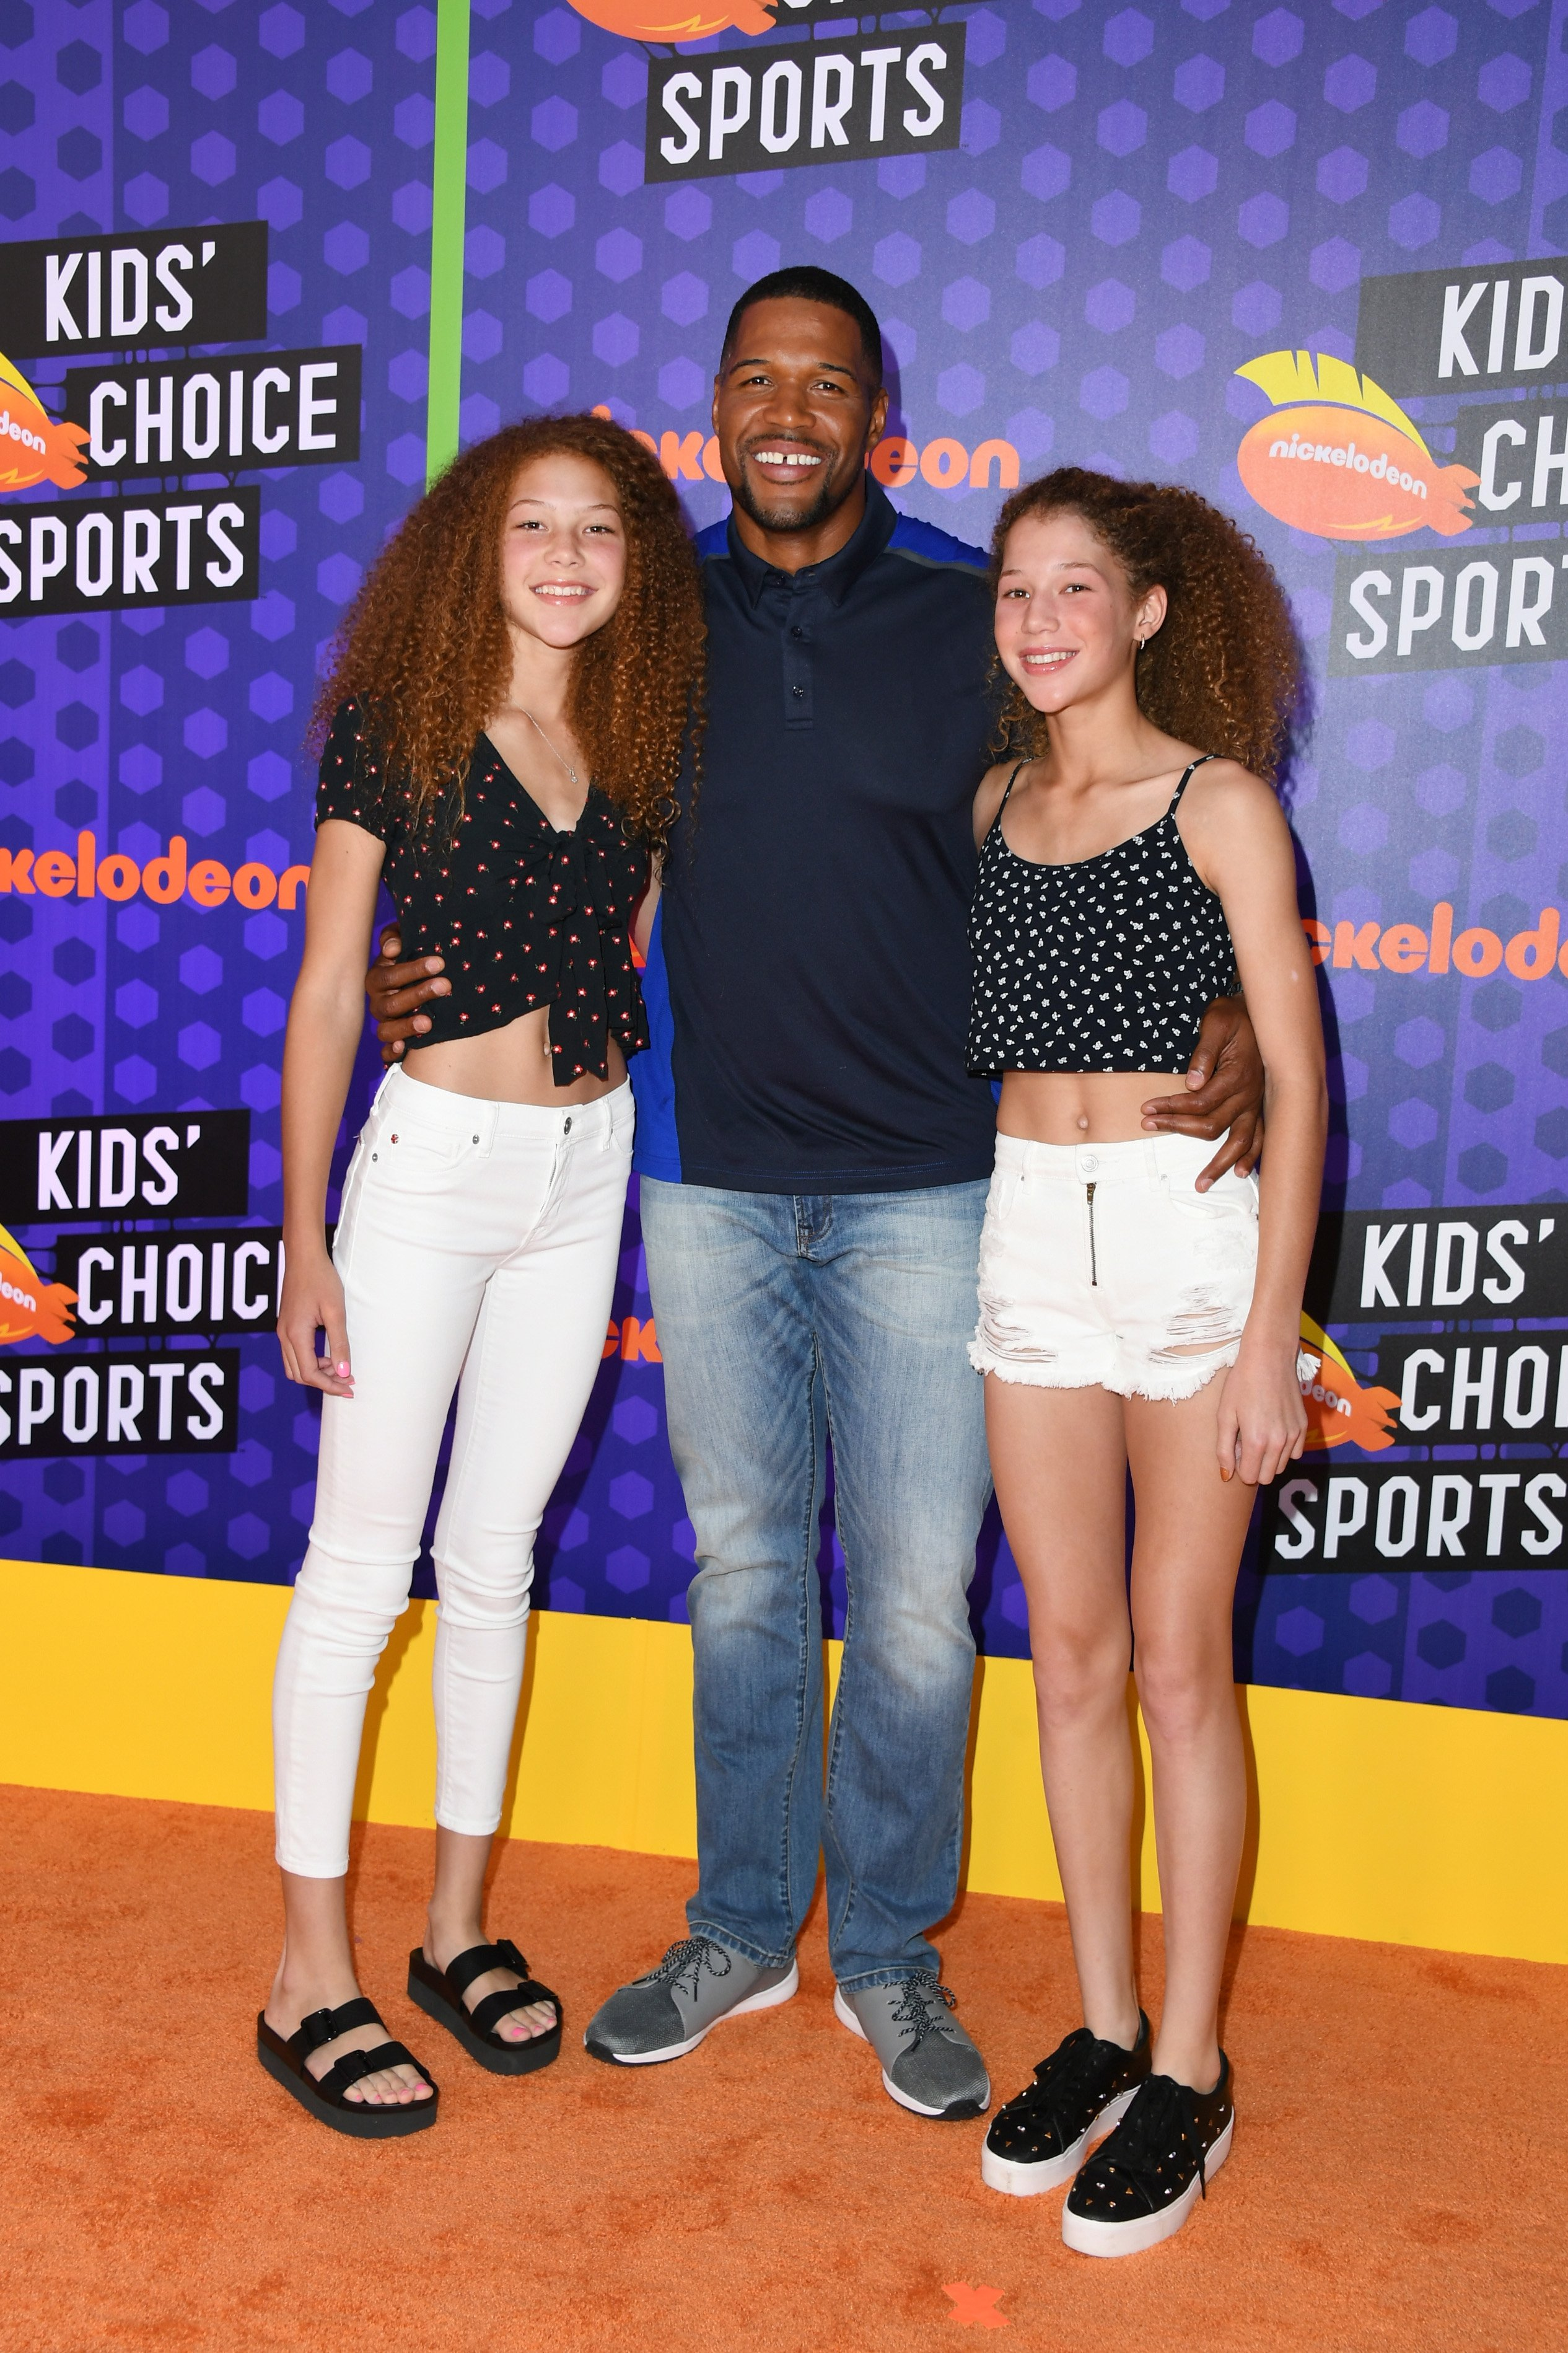 Michael Strahan and his twin daughters Isabella Strahan and Sophia Strahan at the Nickelodeon Kids' Choice Sports 2018 in Santa Monica, California | Photo: Getty Images